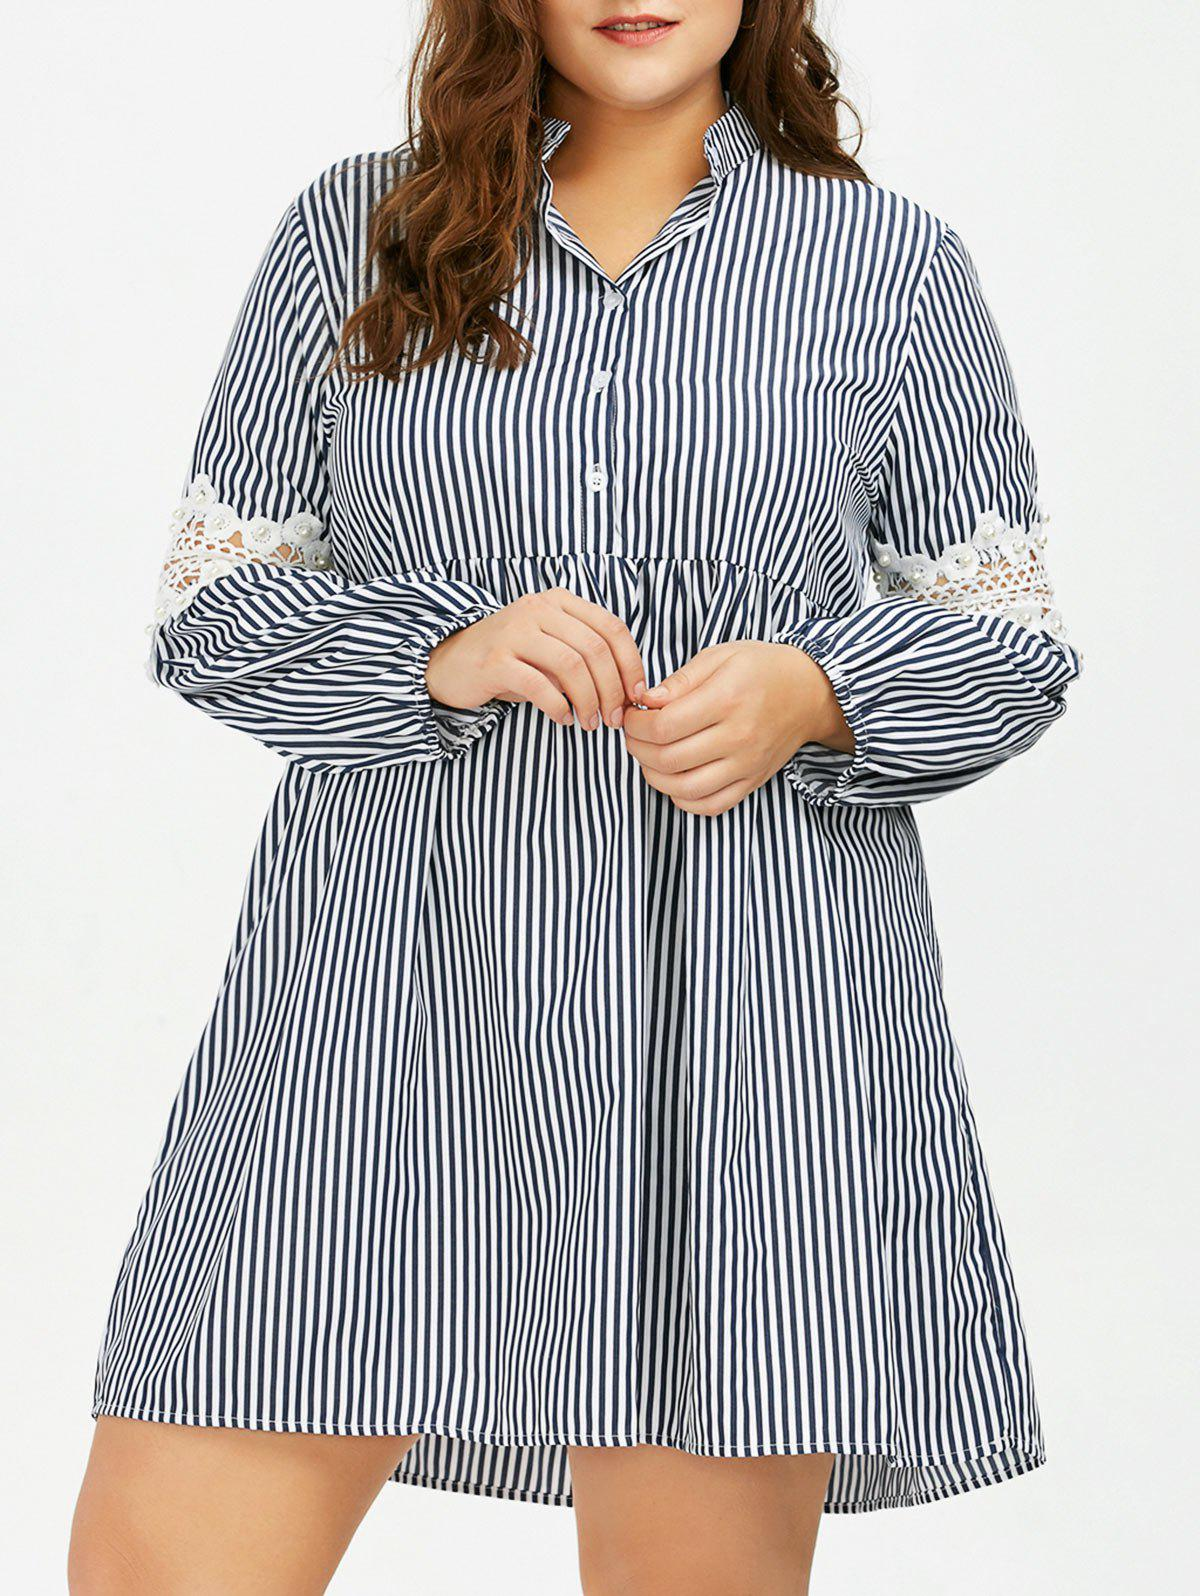 Long Sleeve Plus Size Striped Smock Casual Shirt Dress - GRAY 5XL